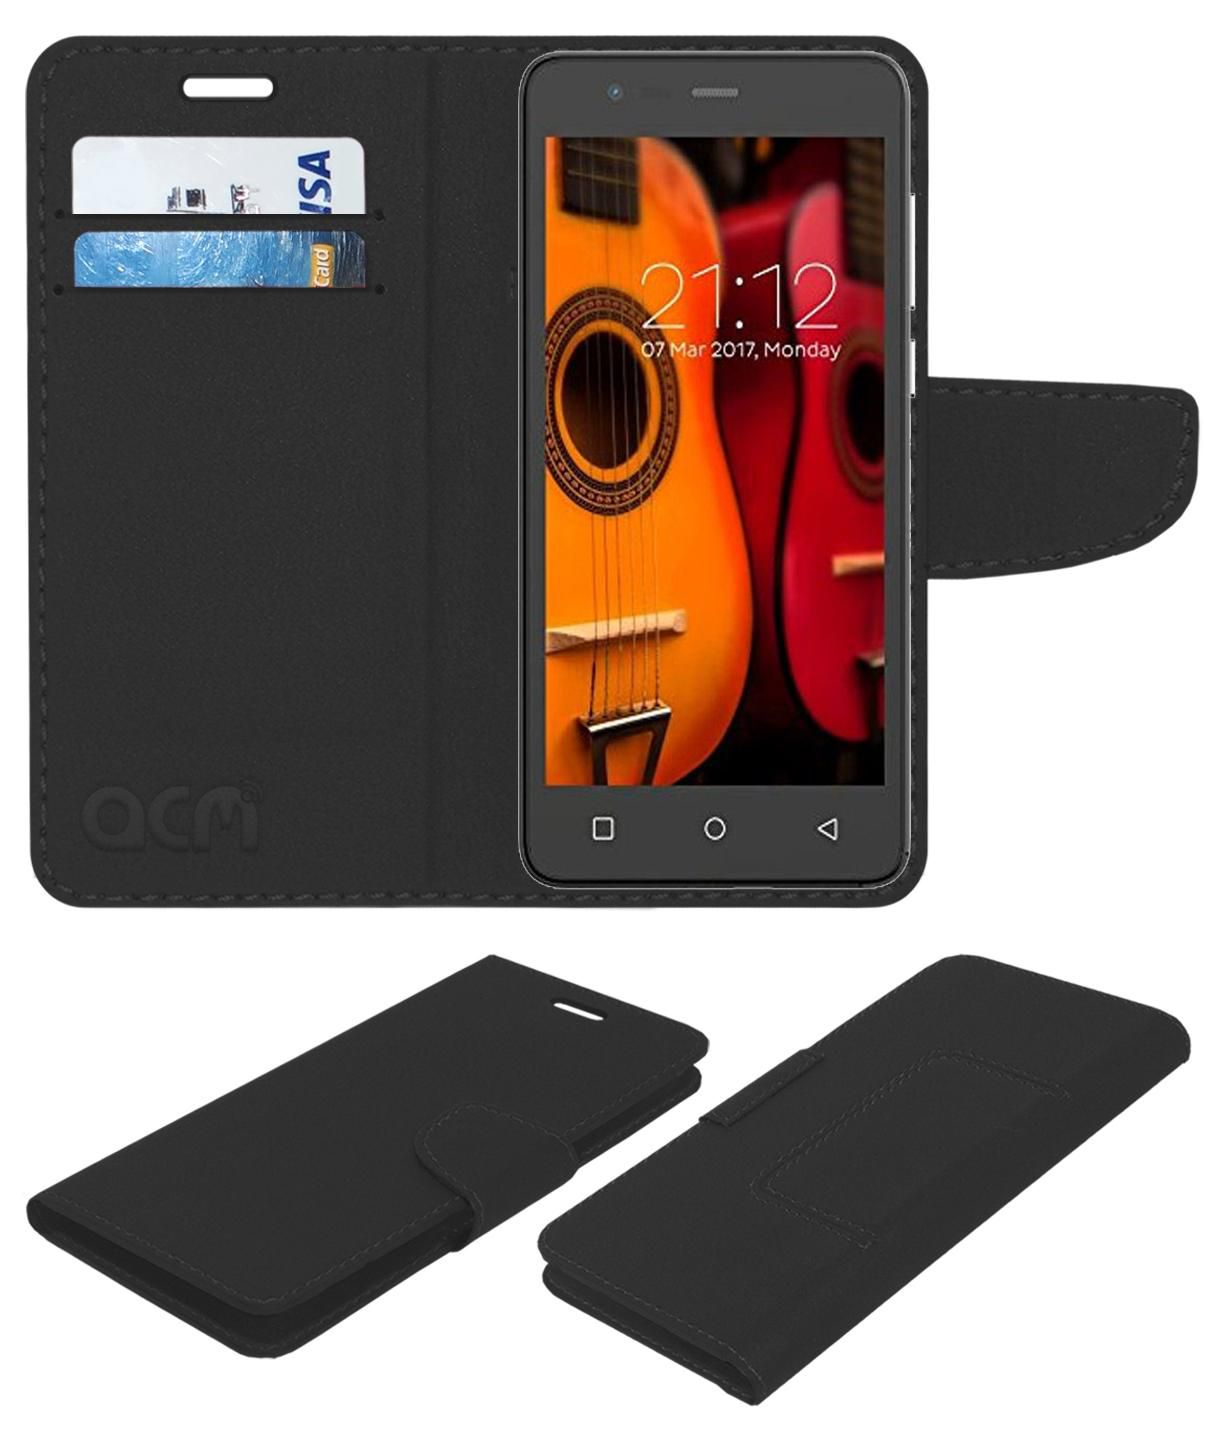 Zen Admire Buzz Flip Cover by ACM - Black